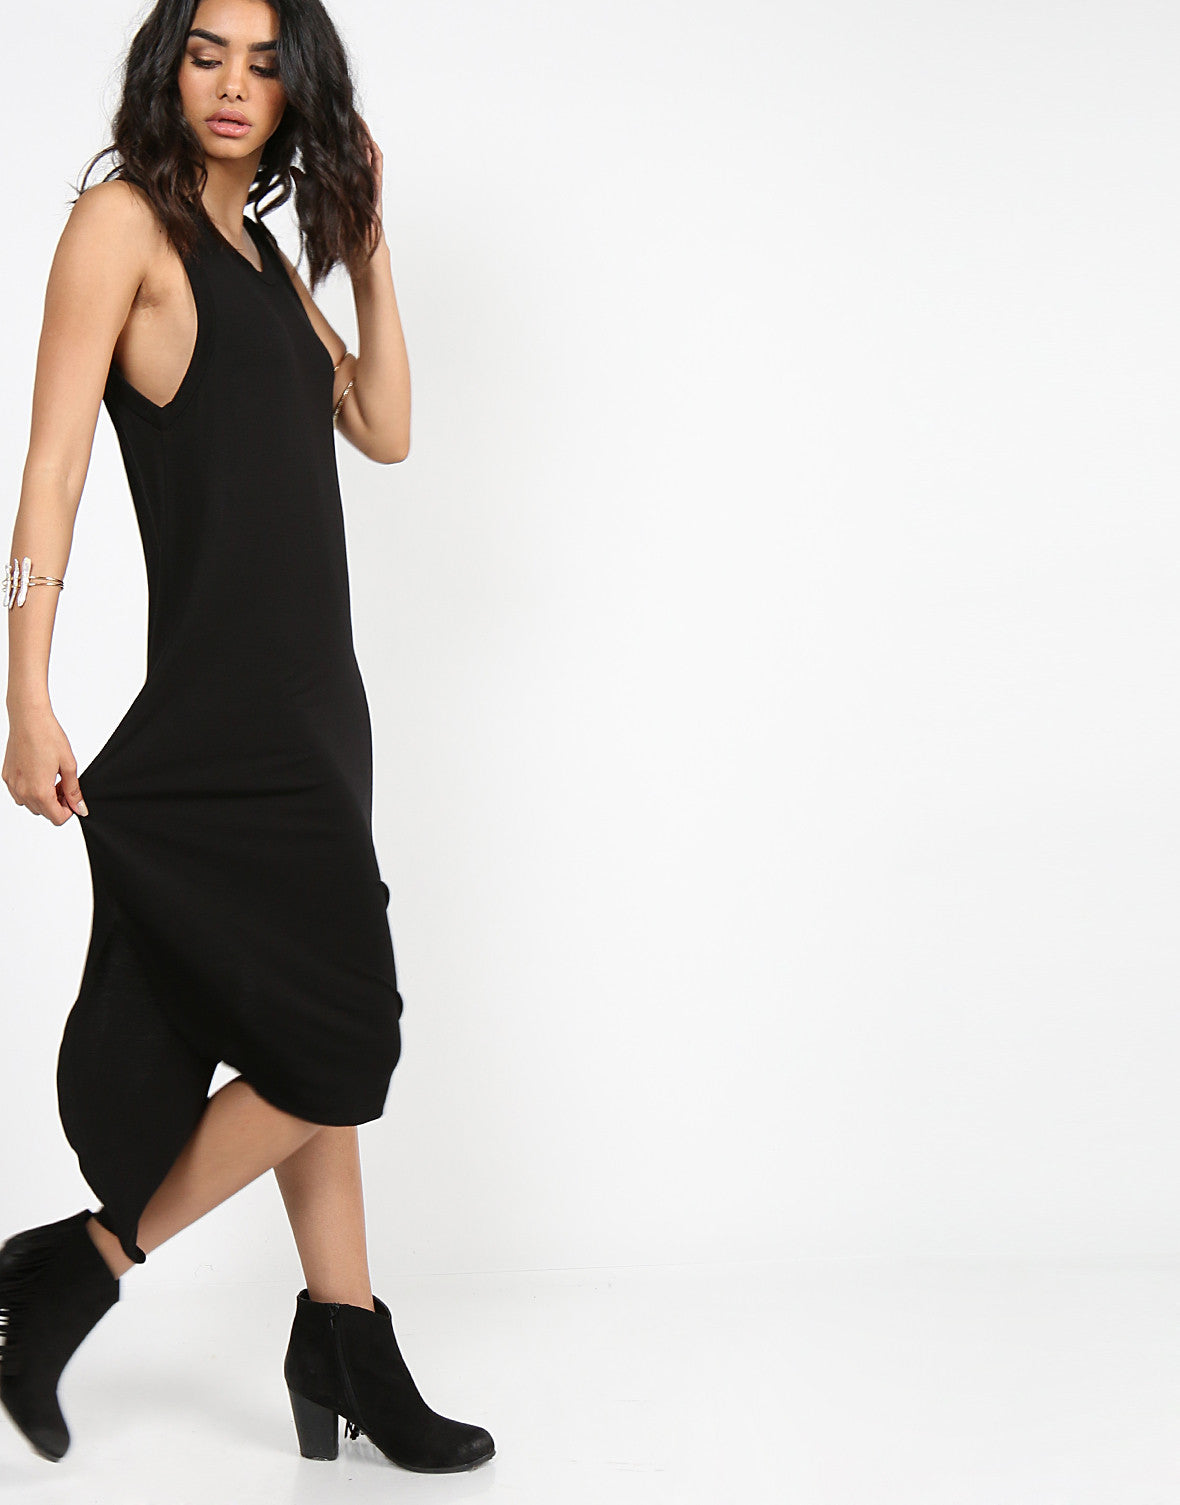 Basic Sleeveless Hi-Low Dress - Black